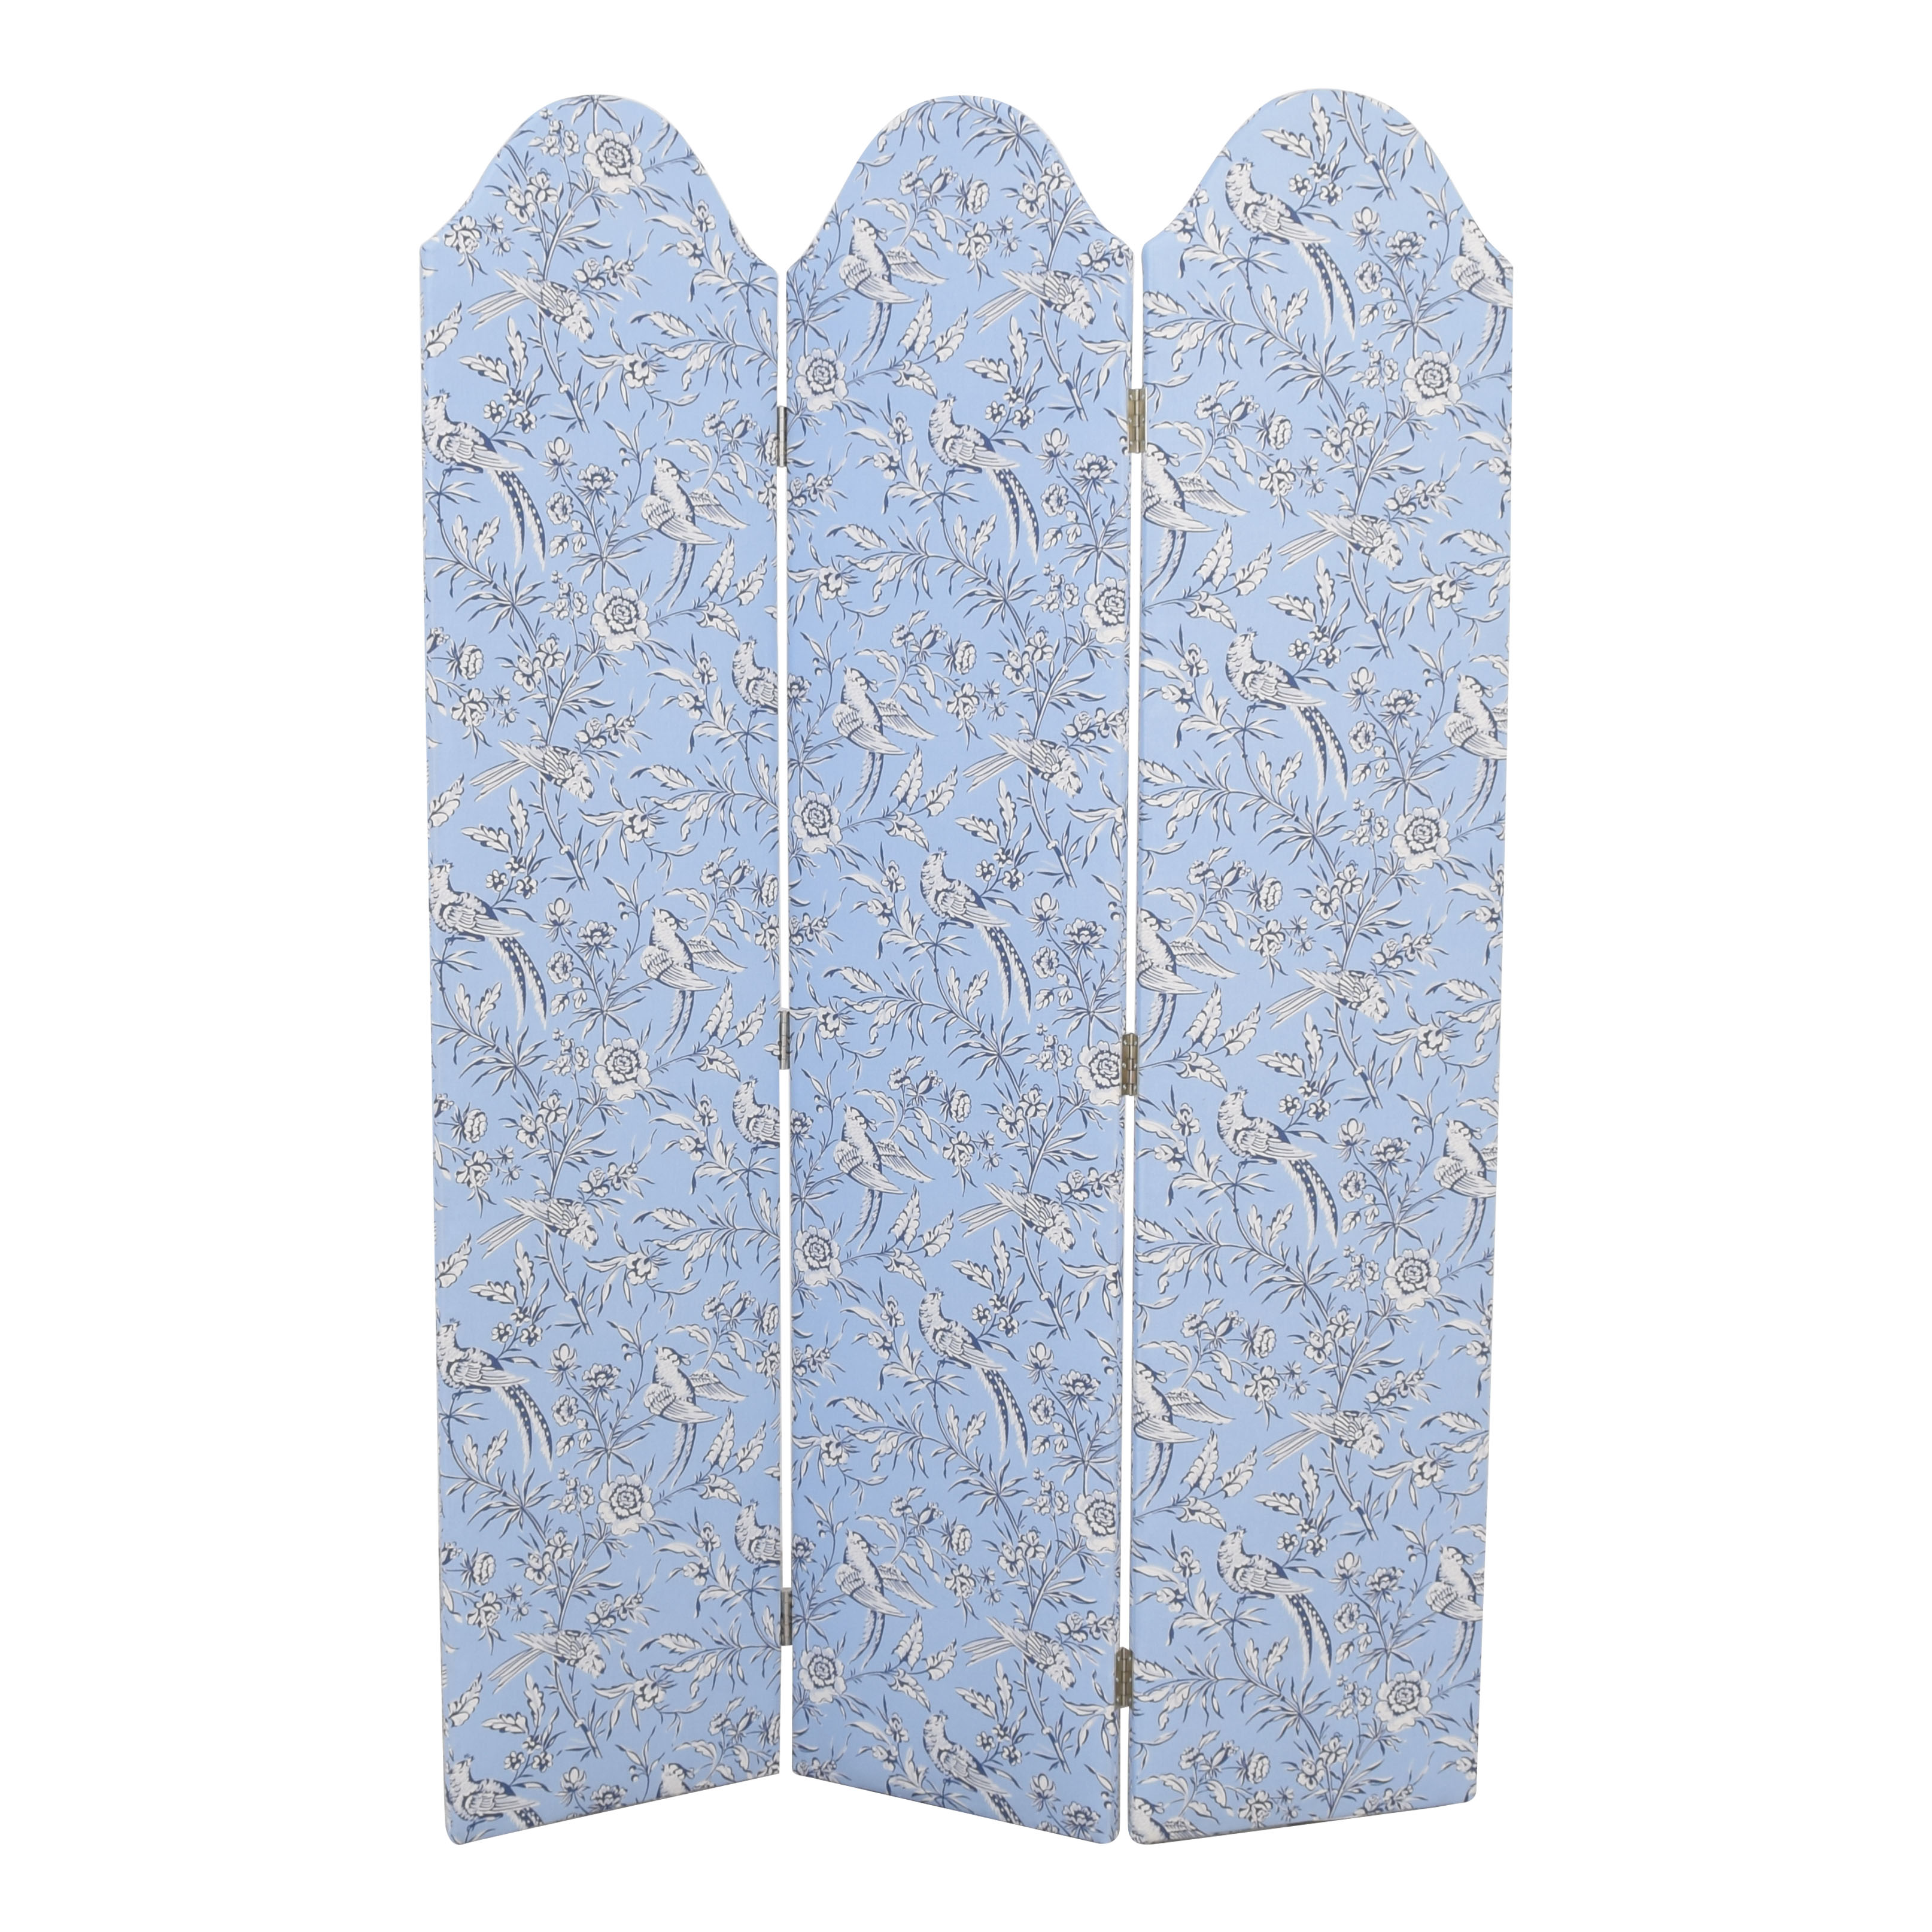 shop The Inside Scalloped Screen in Blue Aviary by Scalamandre The Inside Decor